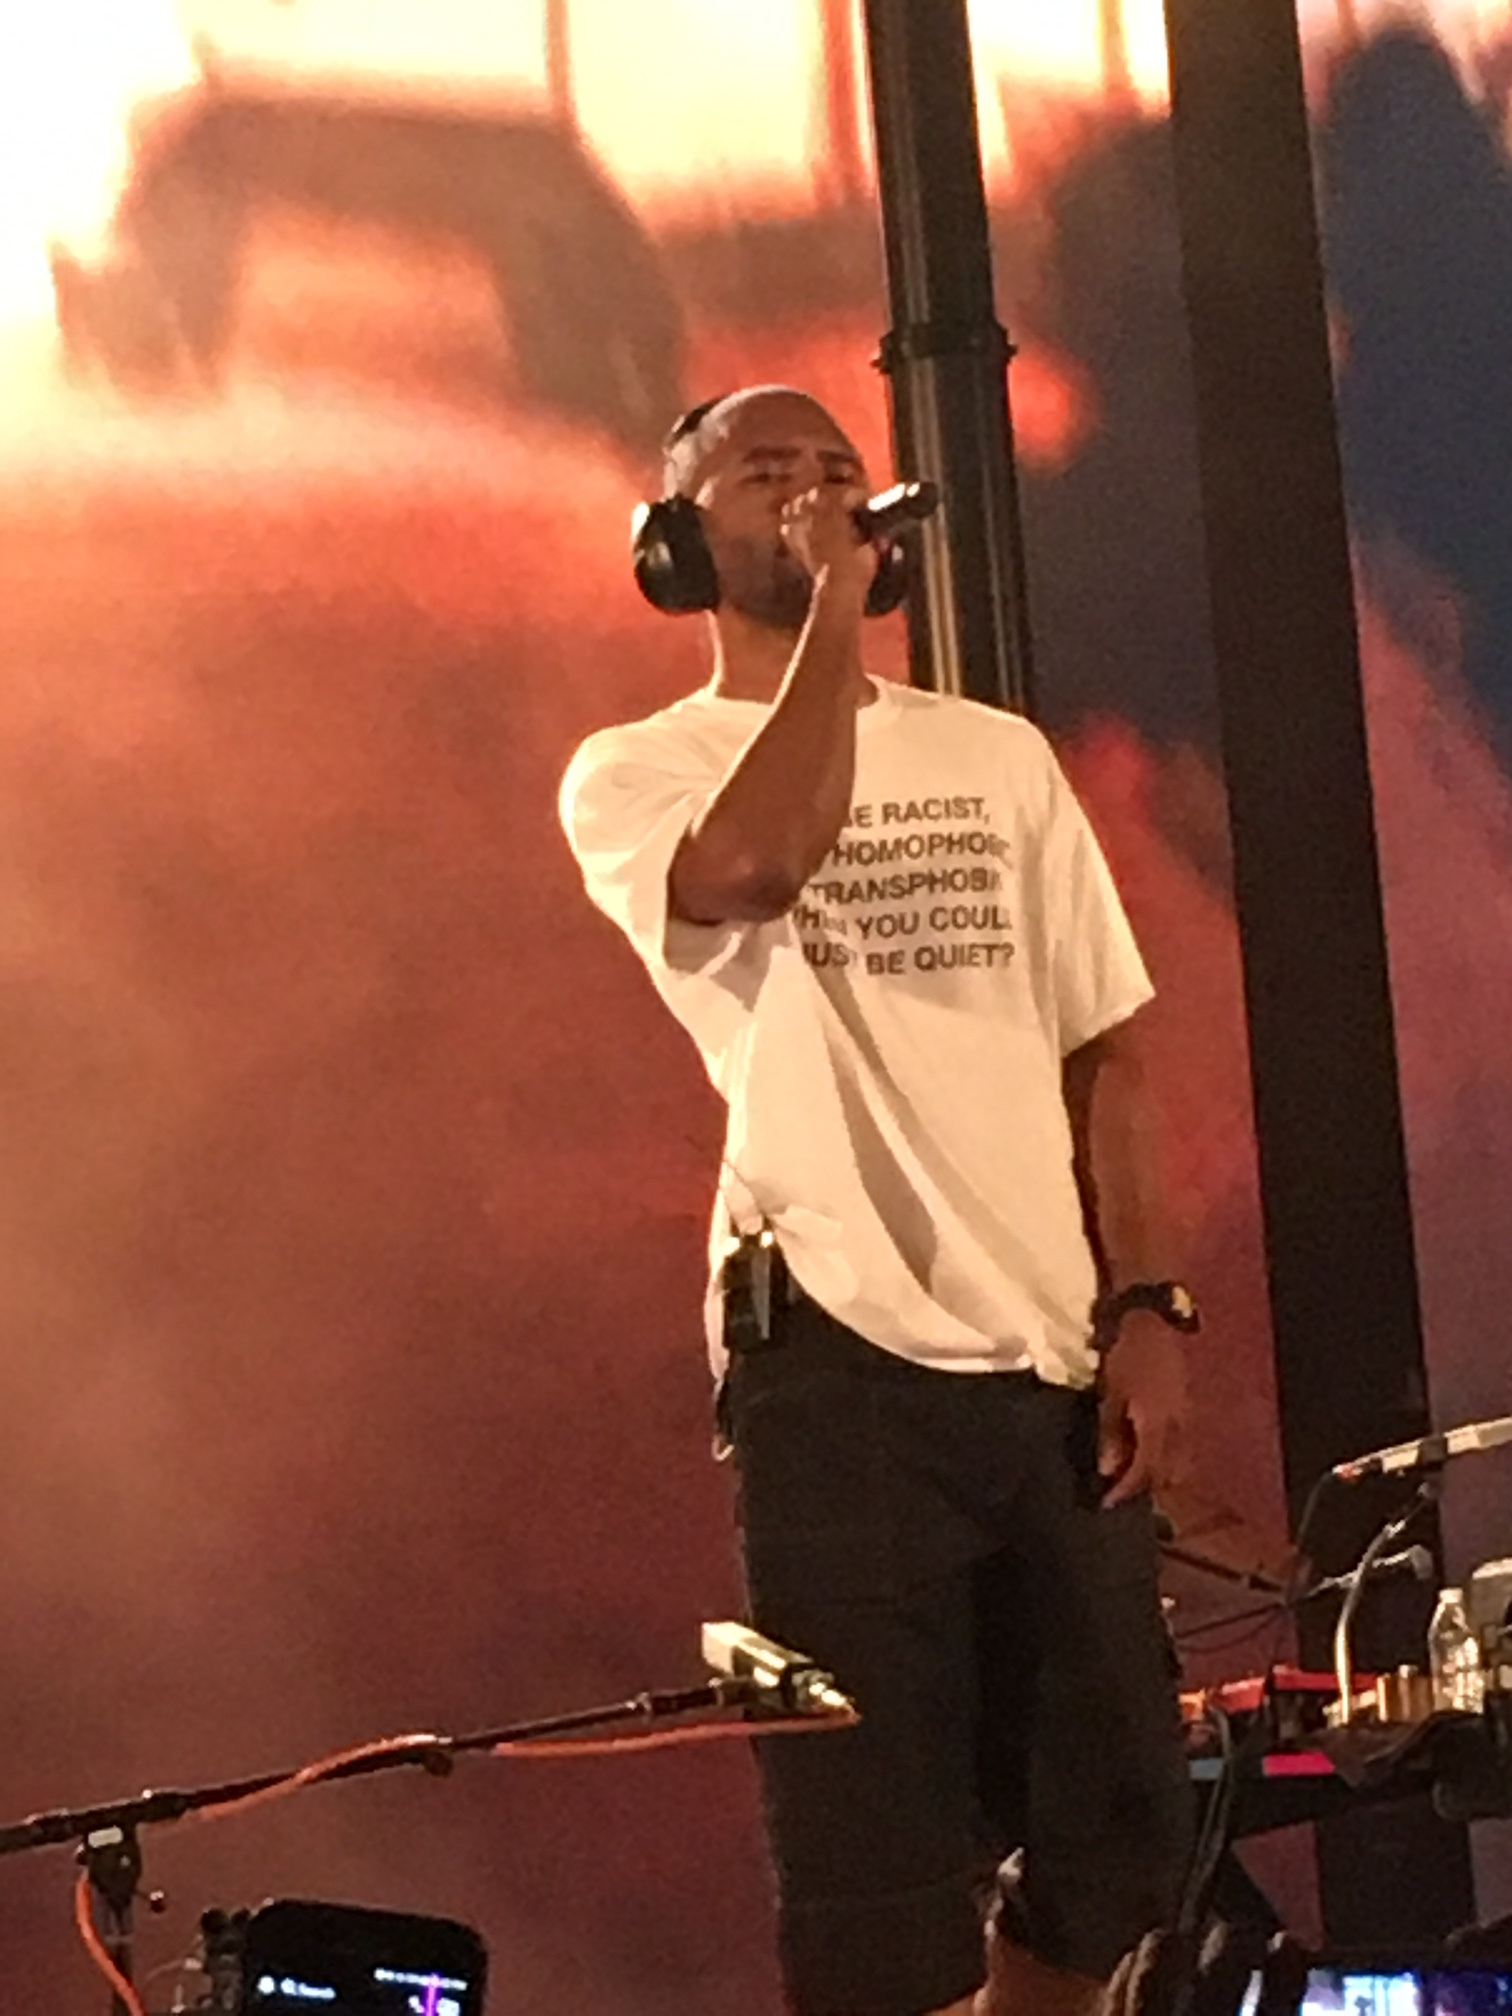 MOMENTS I WANT TO REMEMBER VOL. 1 - FRANK OCEAN JULY 28TH 2017